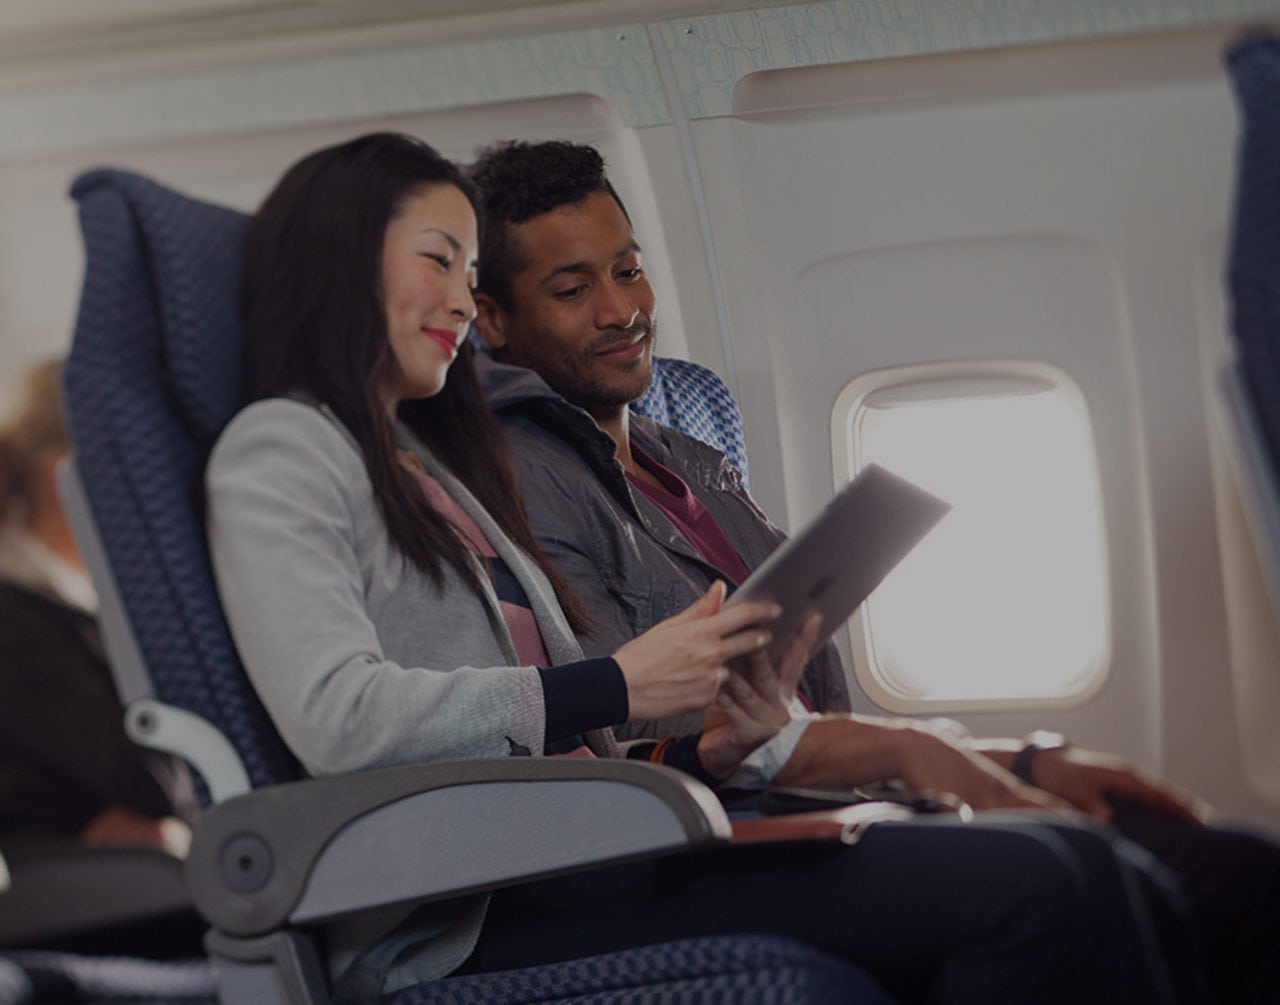 Global Eagle and SES team up to provide IFE and IFC